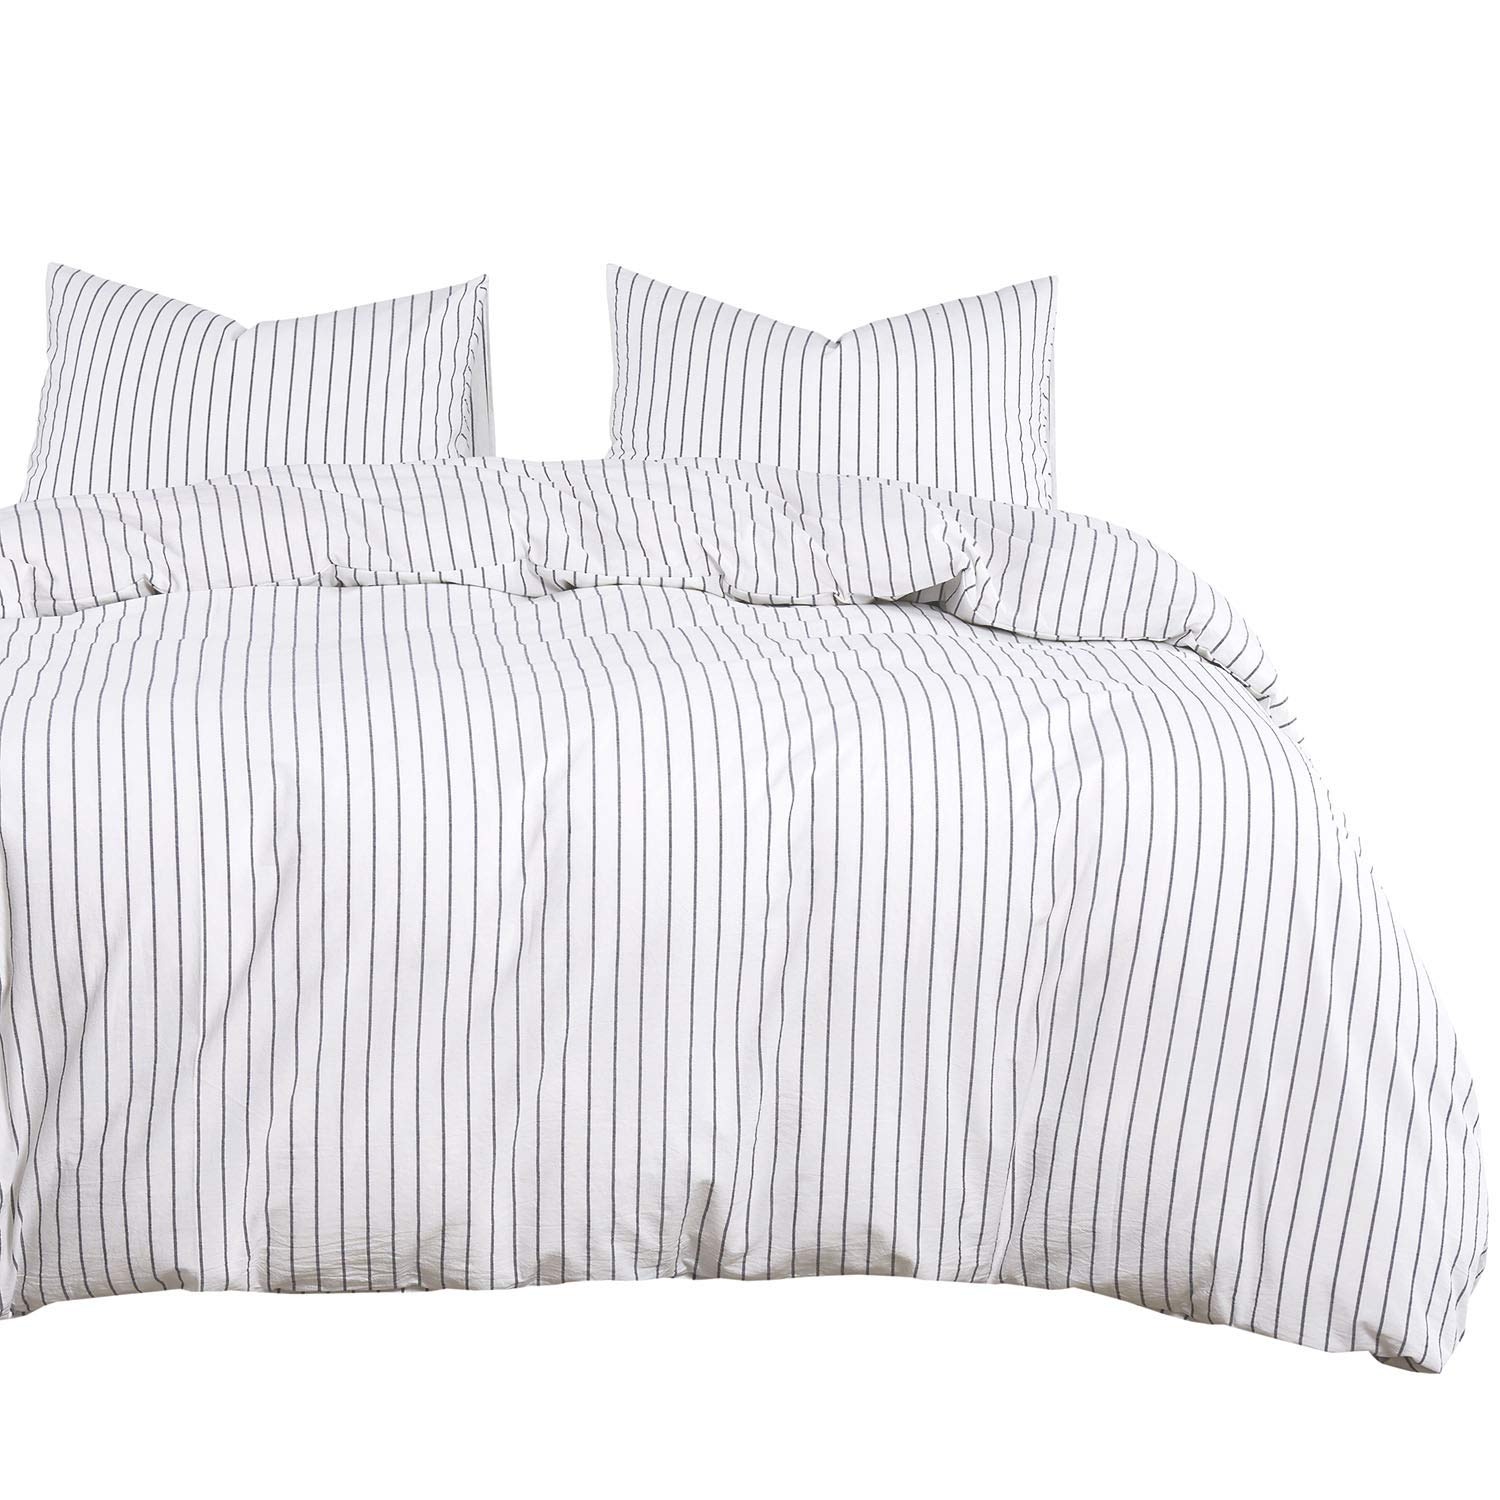 4c3f77e23a8d4 Wake In Cloud - White Striped Duvet Cover Set, 100% Washed Cotton Bedding,  Black Vertical Ticking Stripes Pattern Printed on White, with Zipper  Closure ...